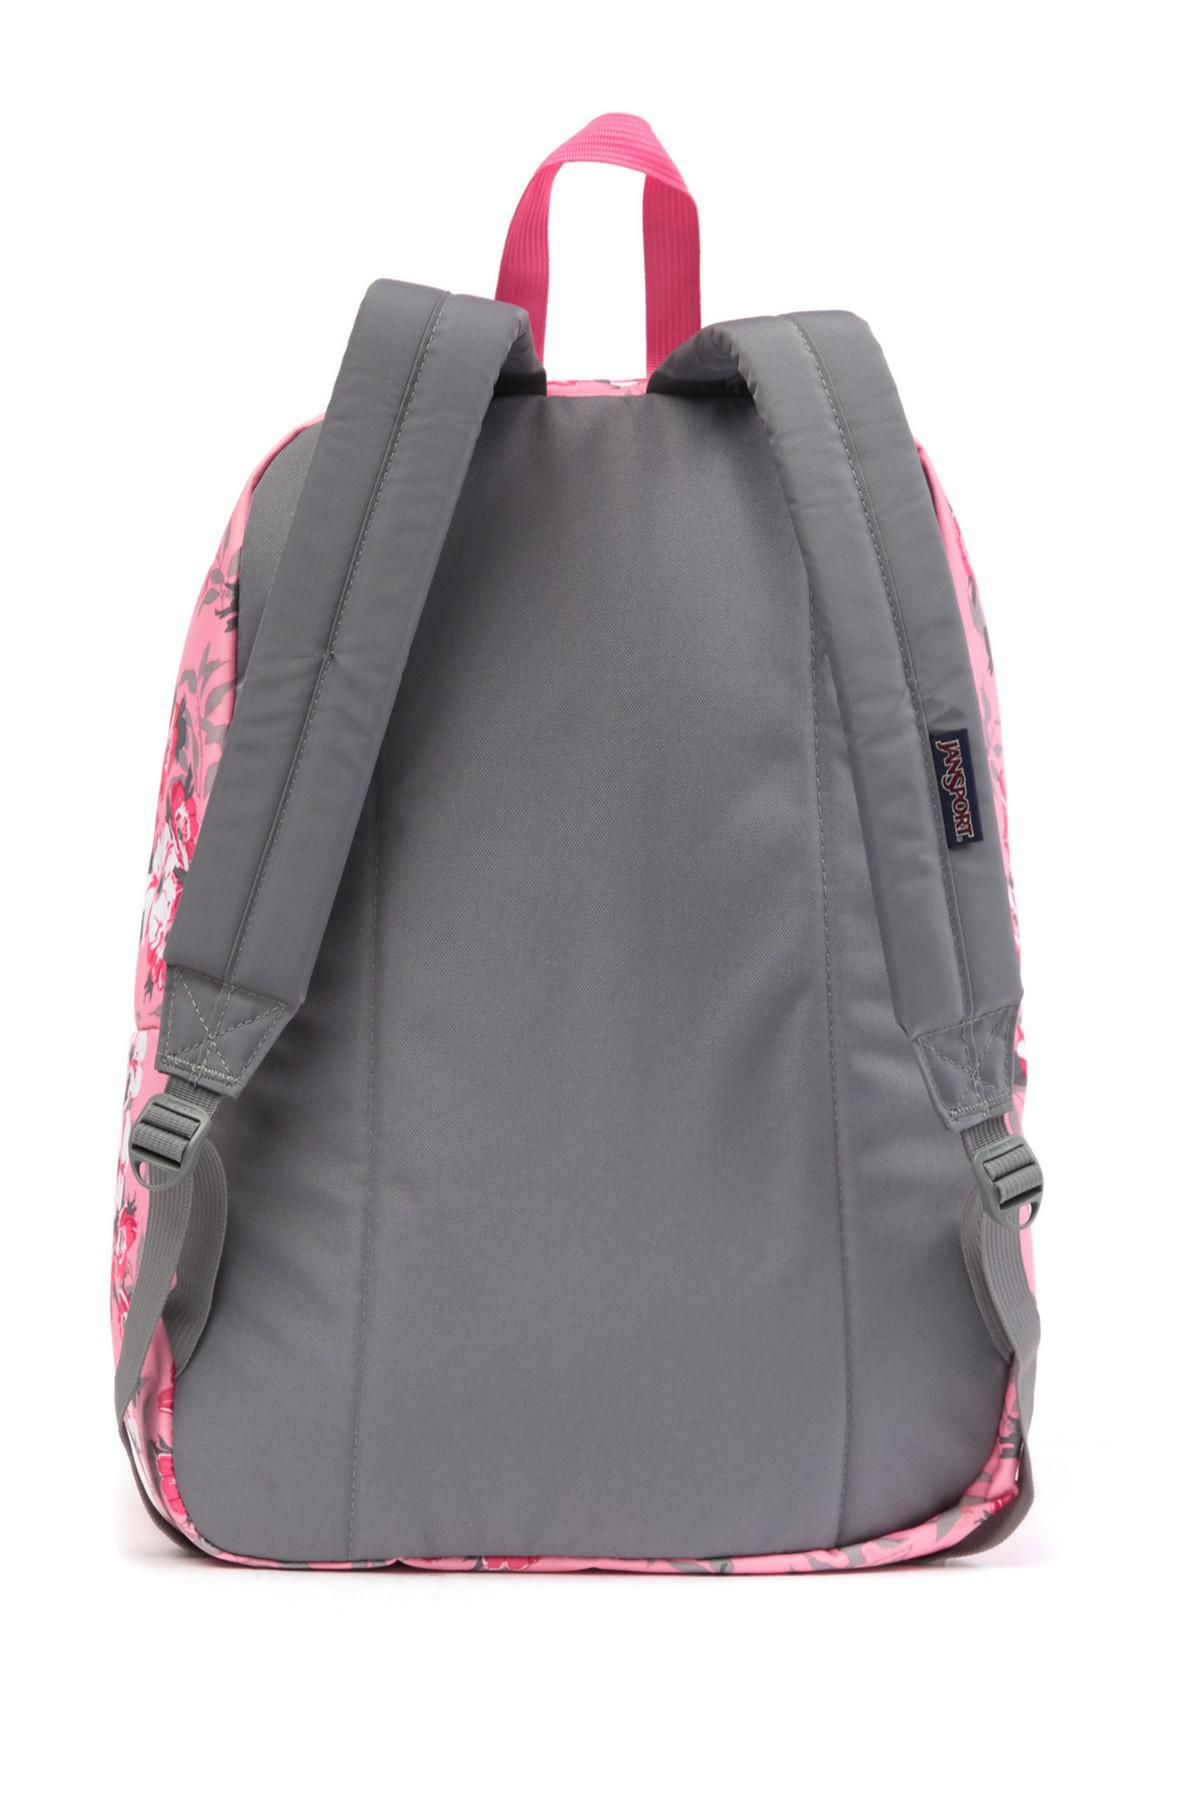 Pink Nation $30 Backpack | The Shred Centre